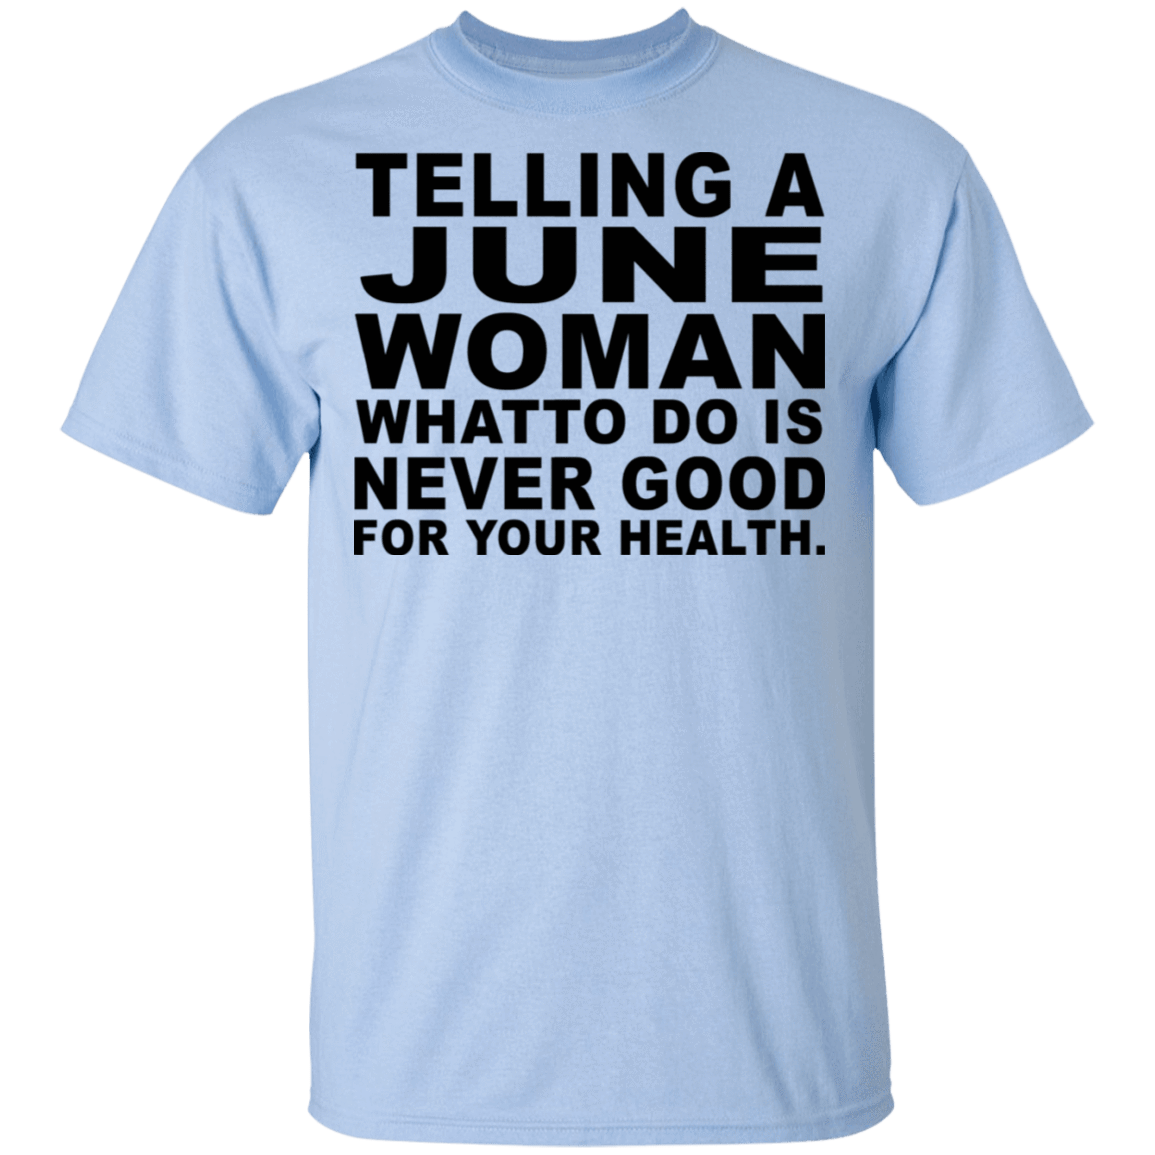 Telling A June Woman What To Do Is Never Good T-Shirts, Hoodies, Tank 22-9800-79463223-47430 - Tee Ript